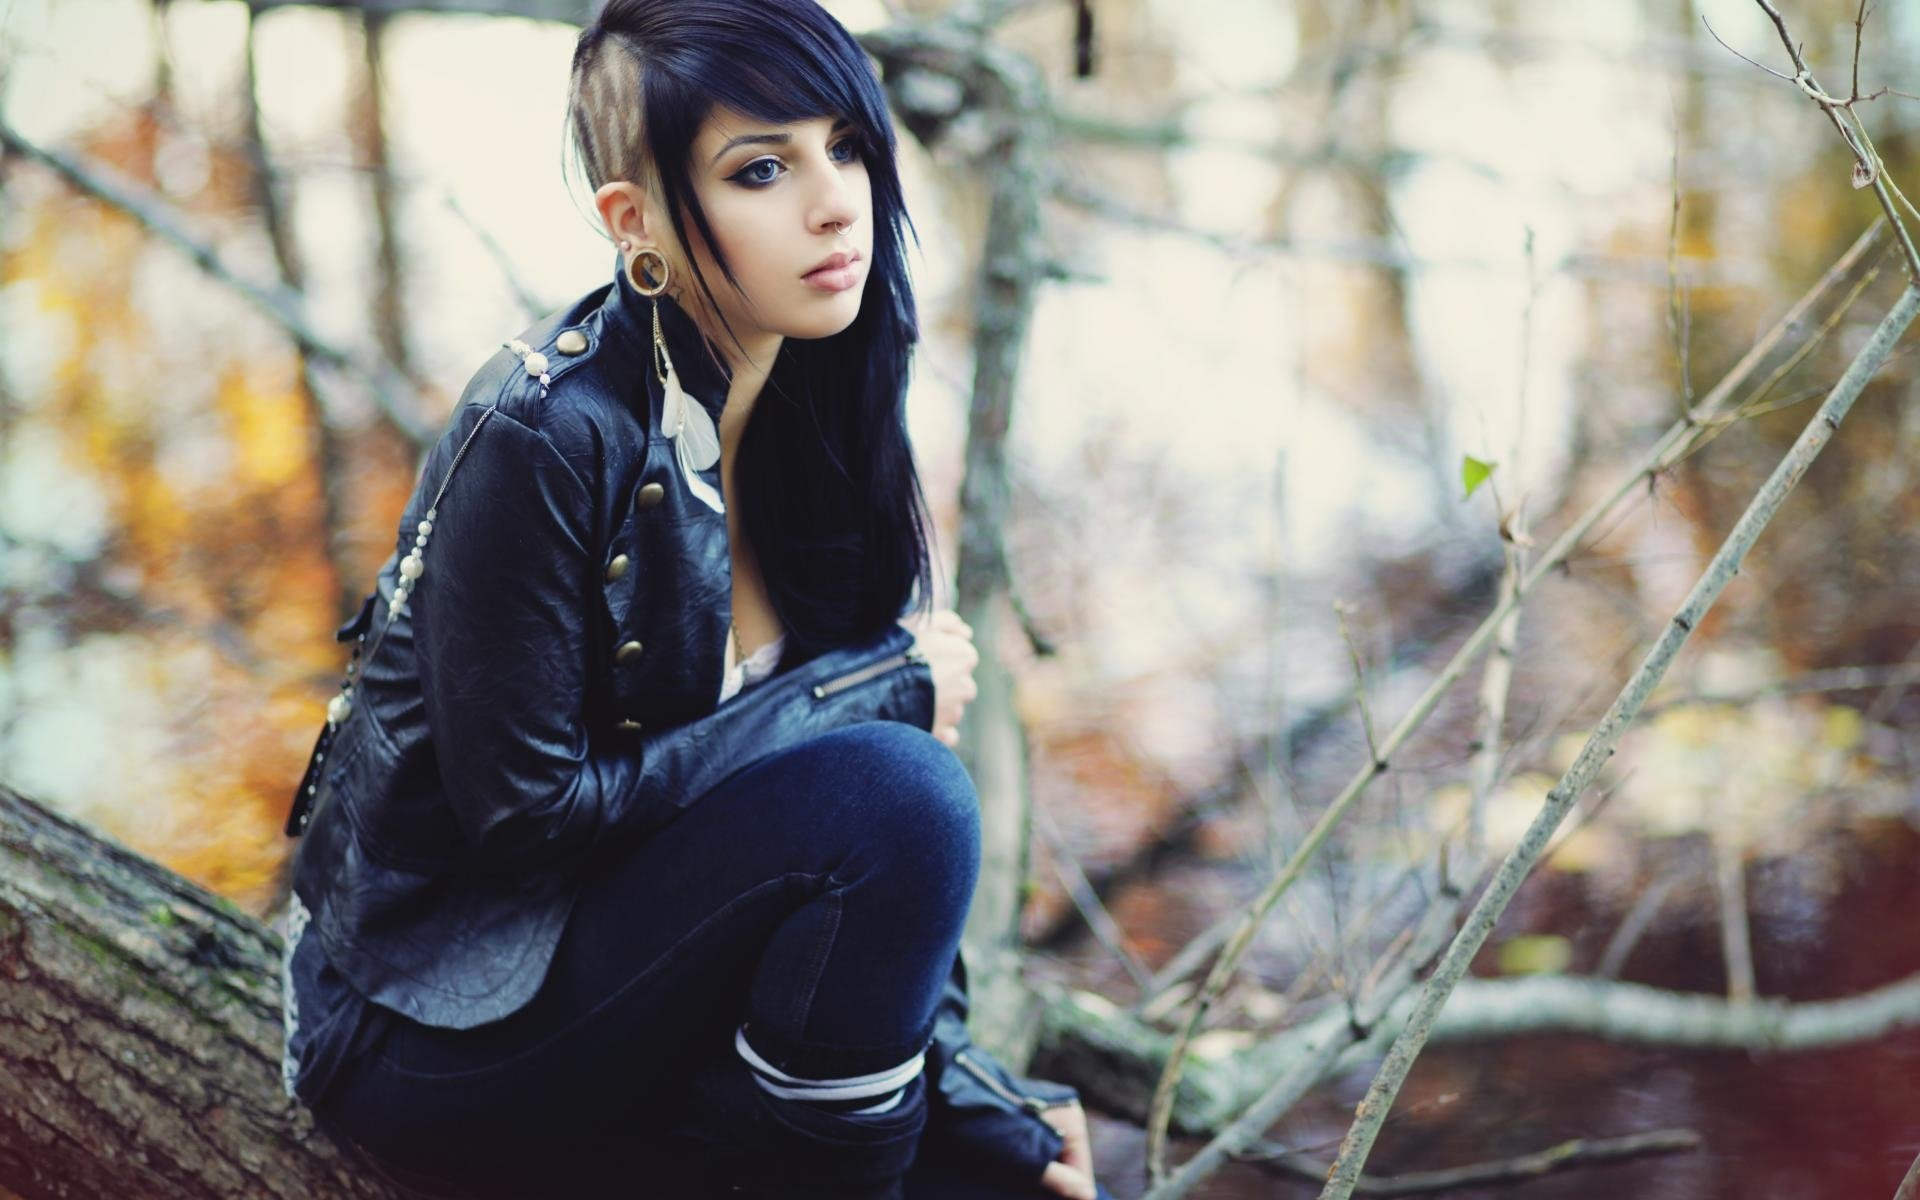 Cute Emo Wallpapers Mobile Emo Hd Wallpaper Background Image 1920x1200 Id